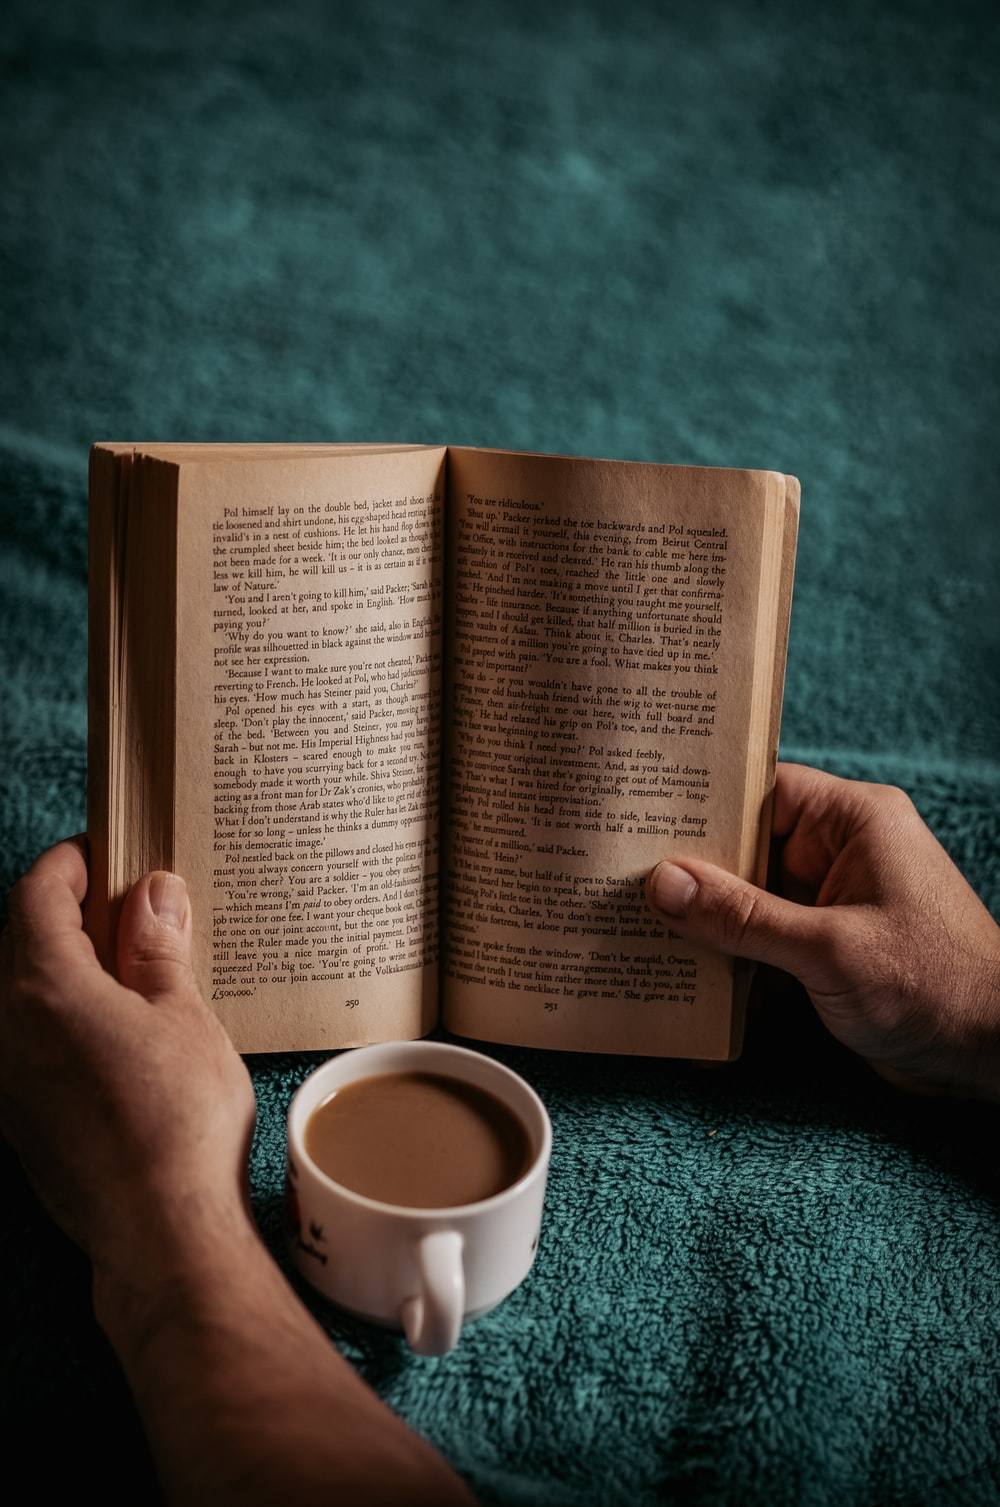 person reading book on green textile